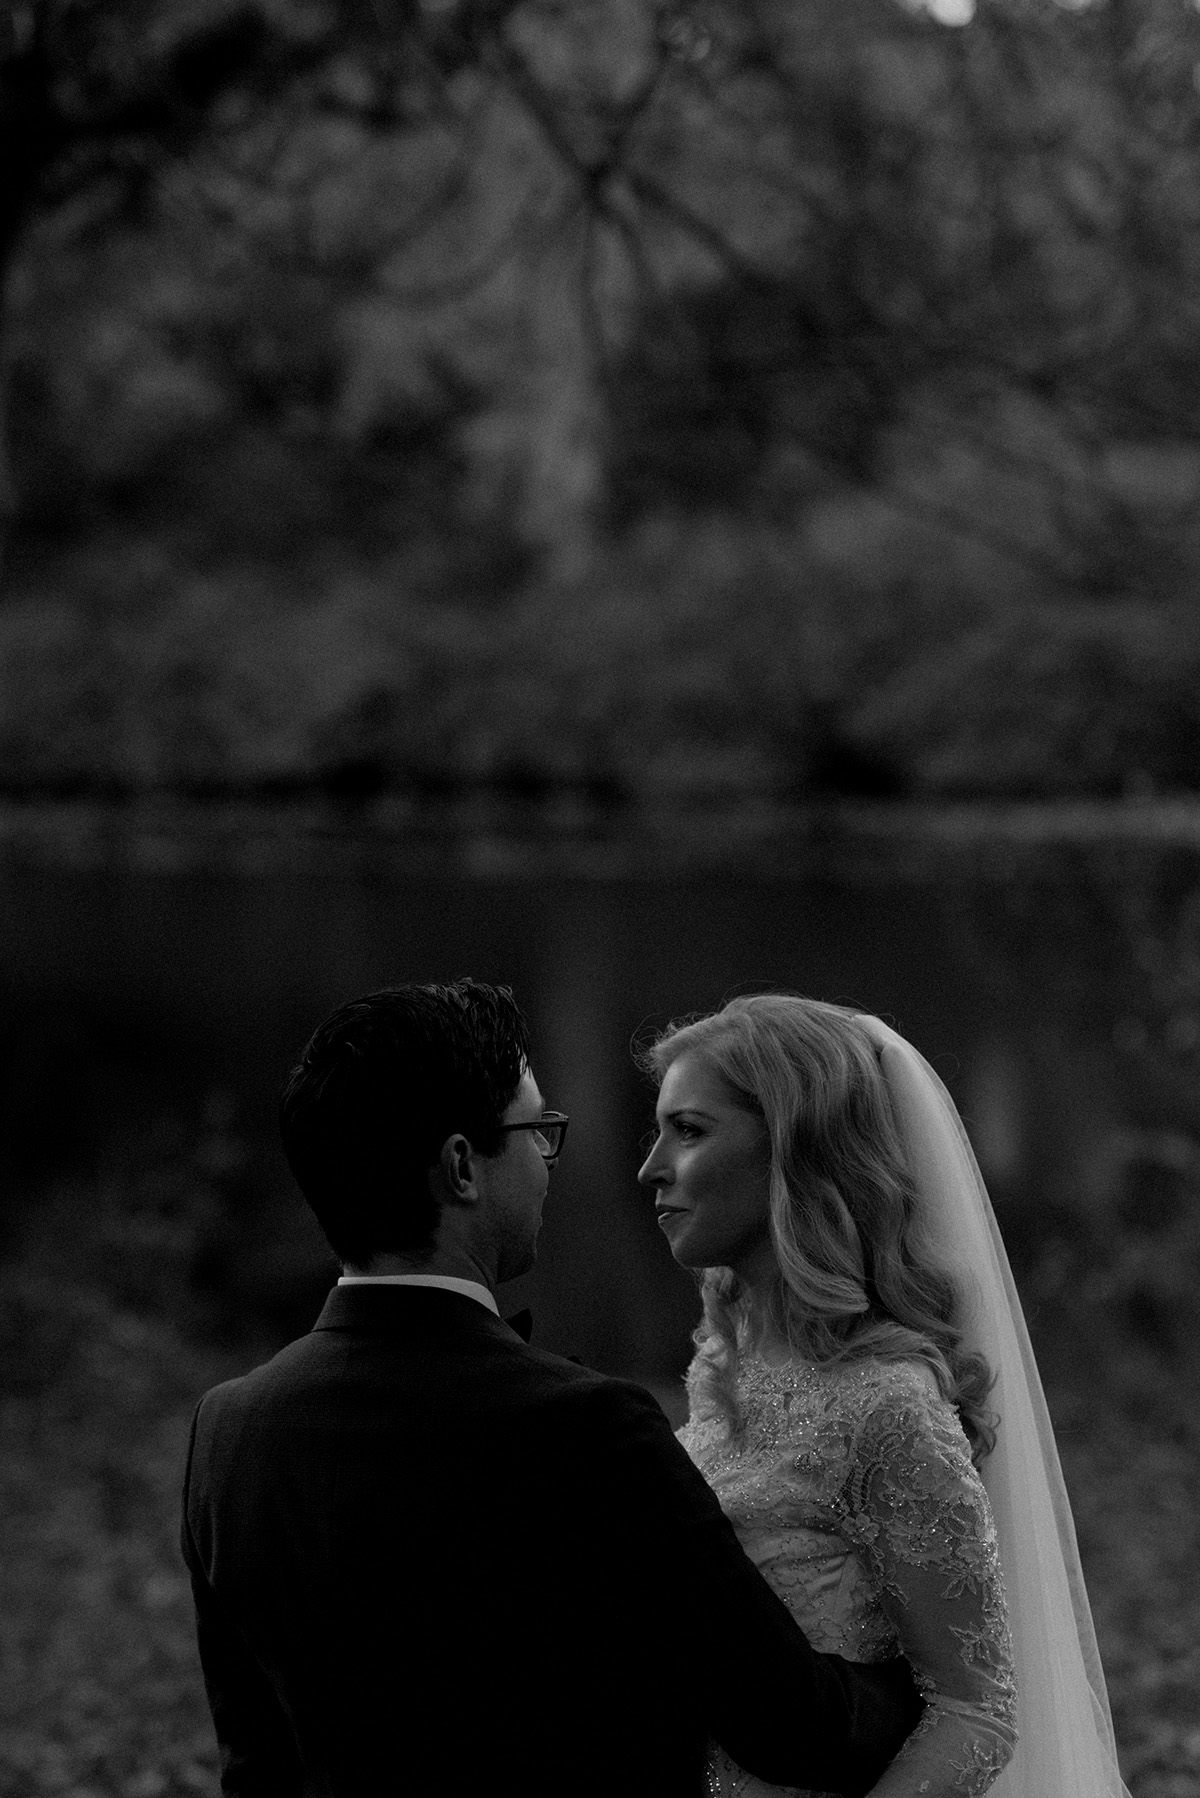 bride and groom timeless portrait alternative wedding photography larchfield estate